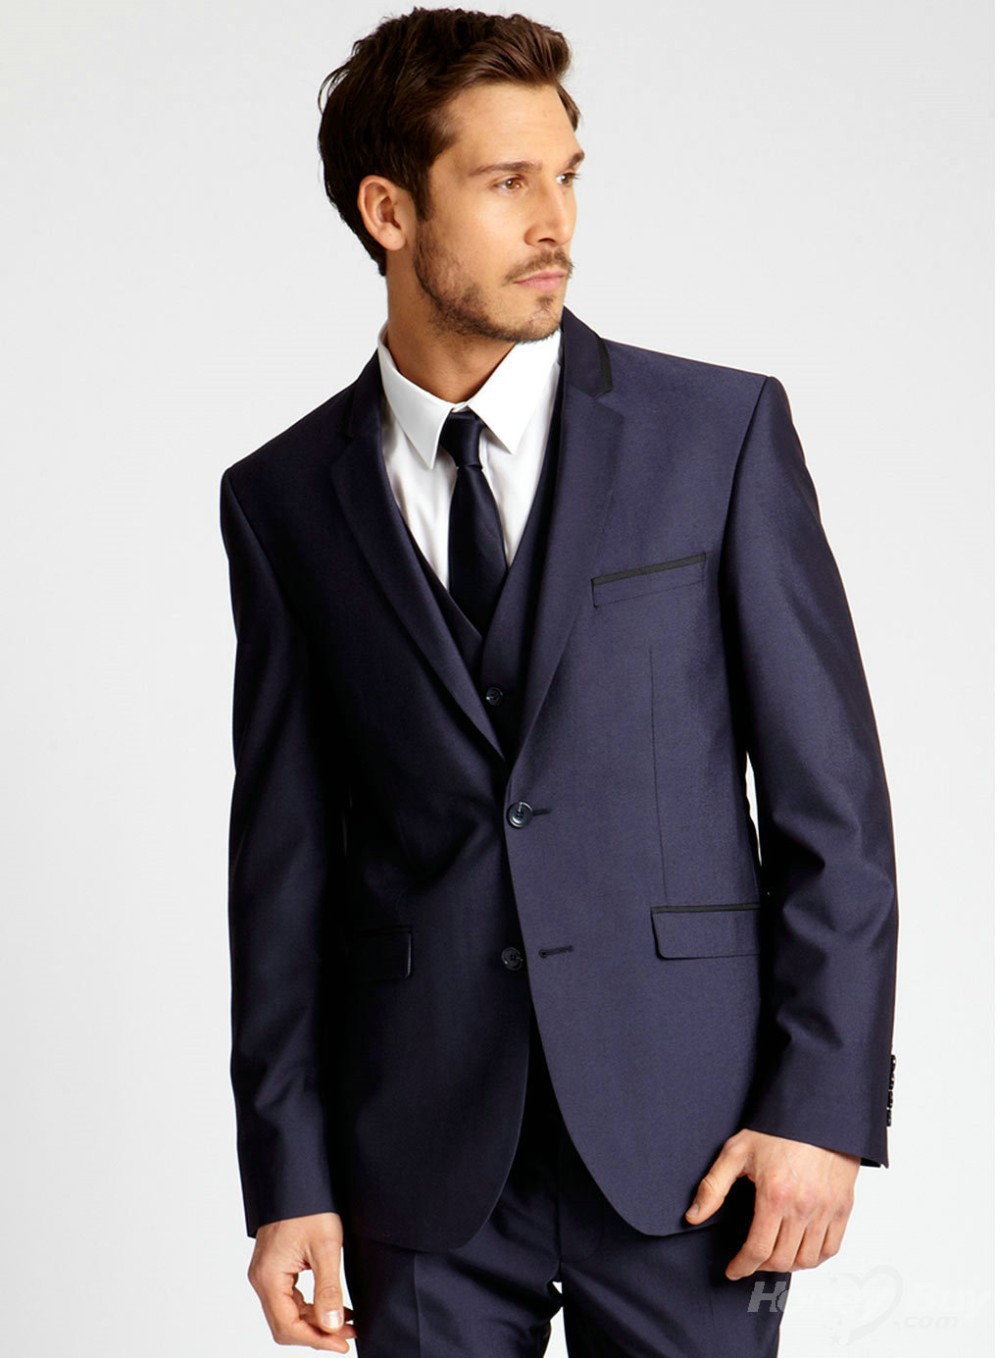 Compare Prices on Mens Sale Suits- Online Shopping/Buy Low Price ...